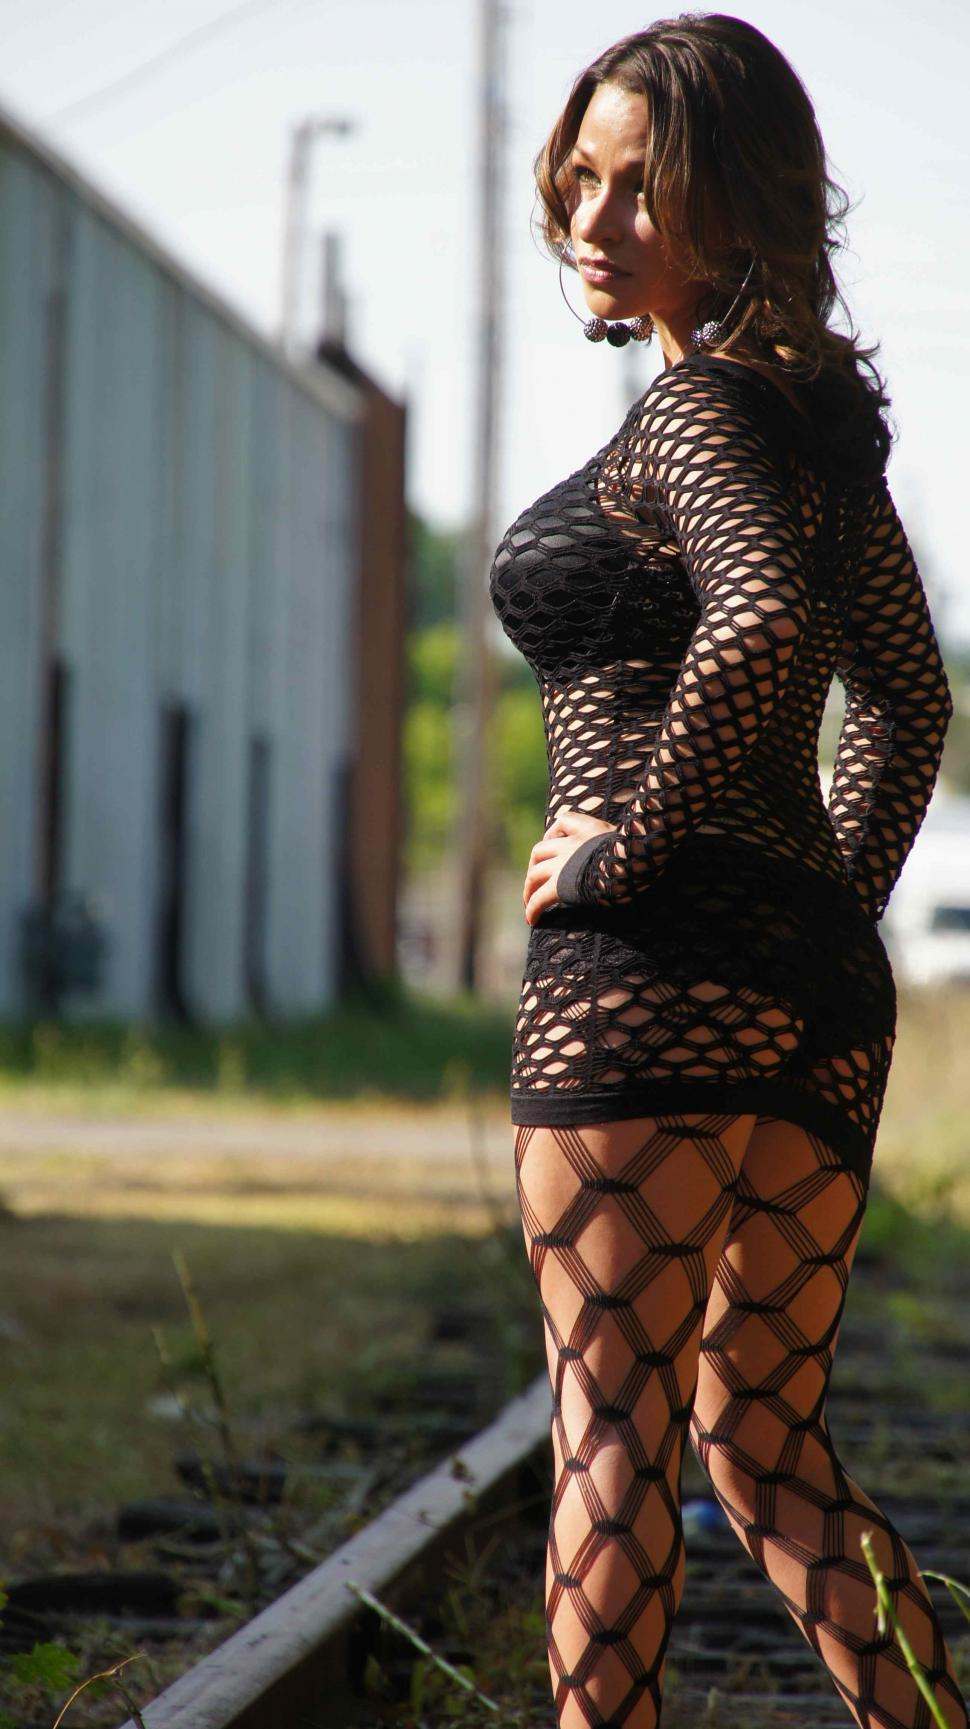 Download Free Stock HD Photo of Woman in Fishnets Stands on Train Track Online